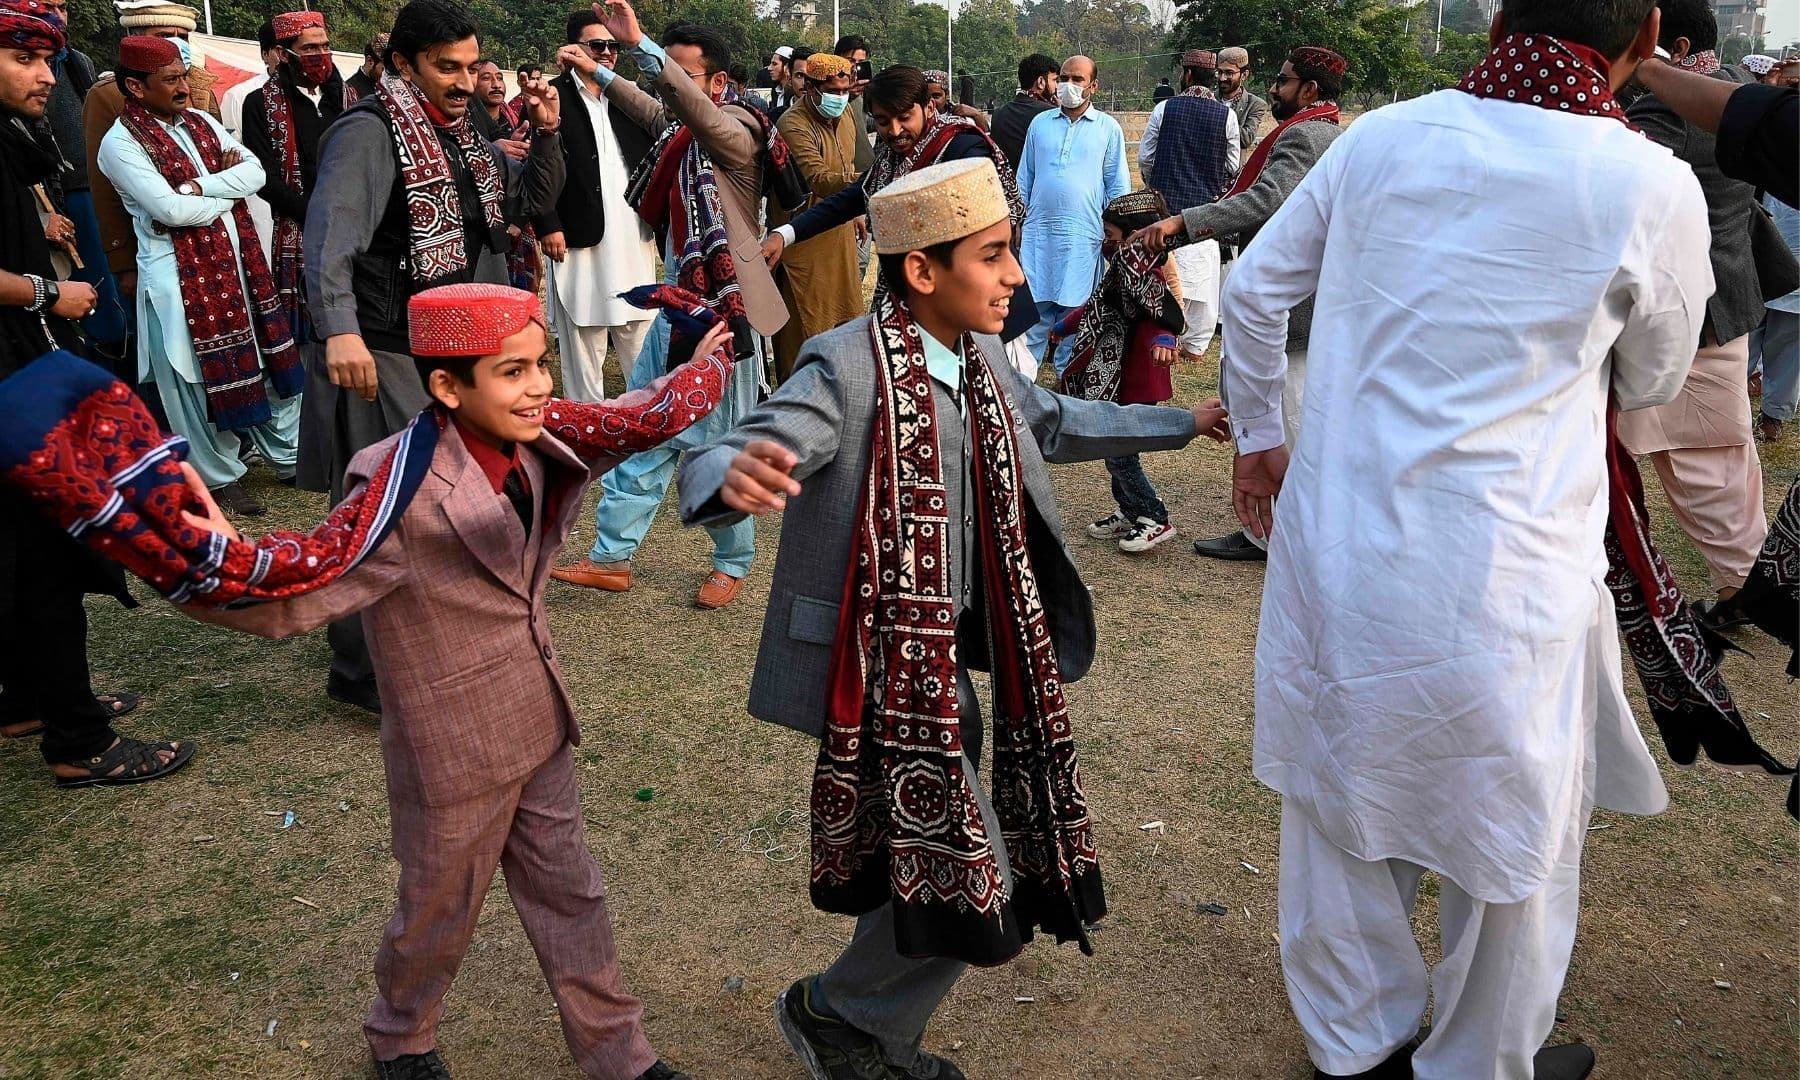 People wearing traditional dresses dance to celebrate the Sindh Culture Day in Islamabad. — AFP